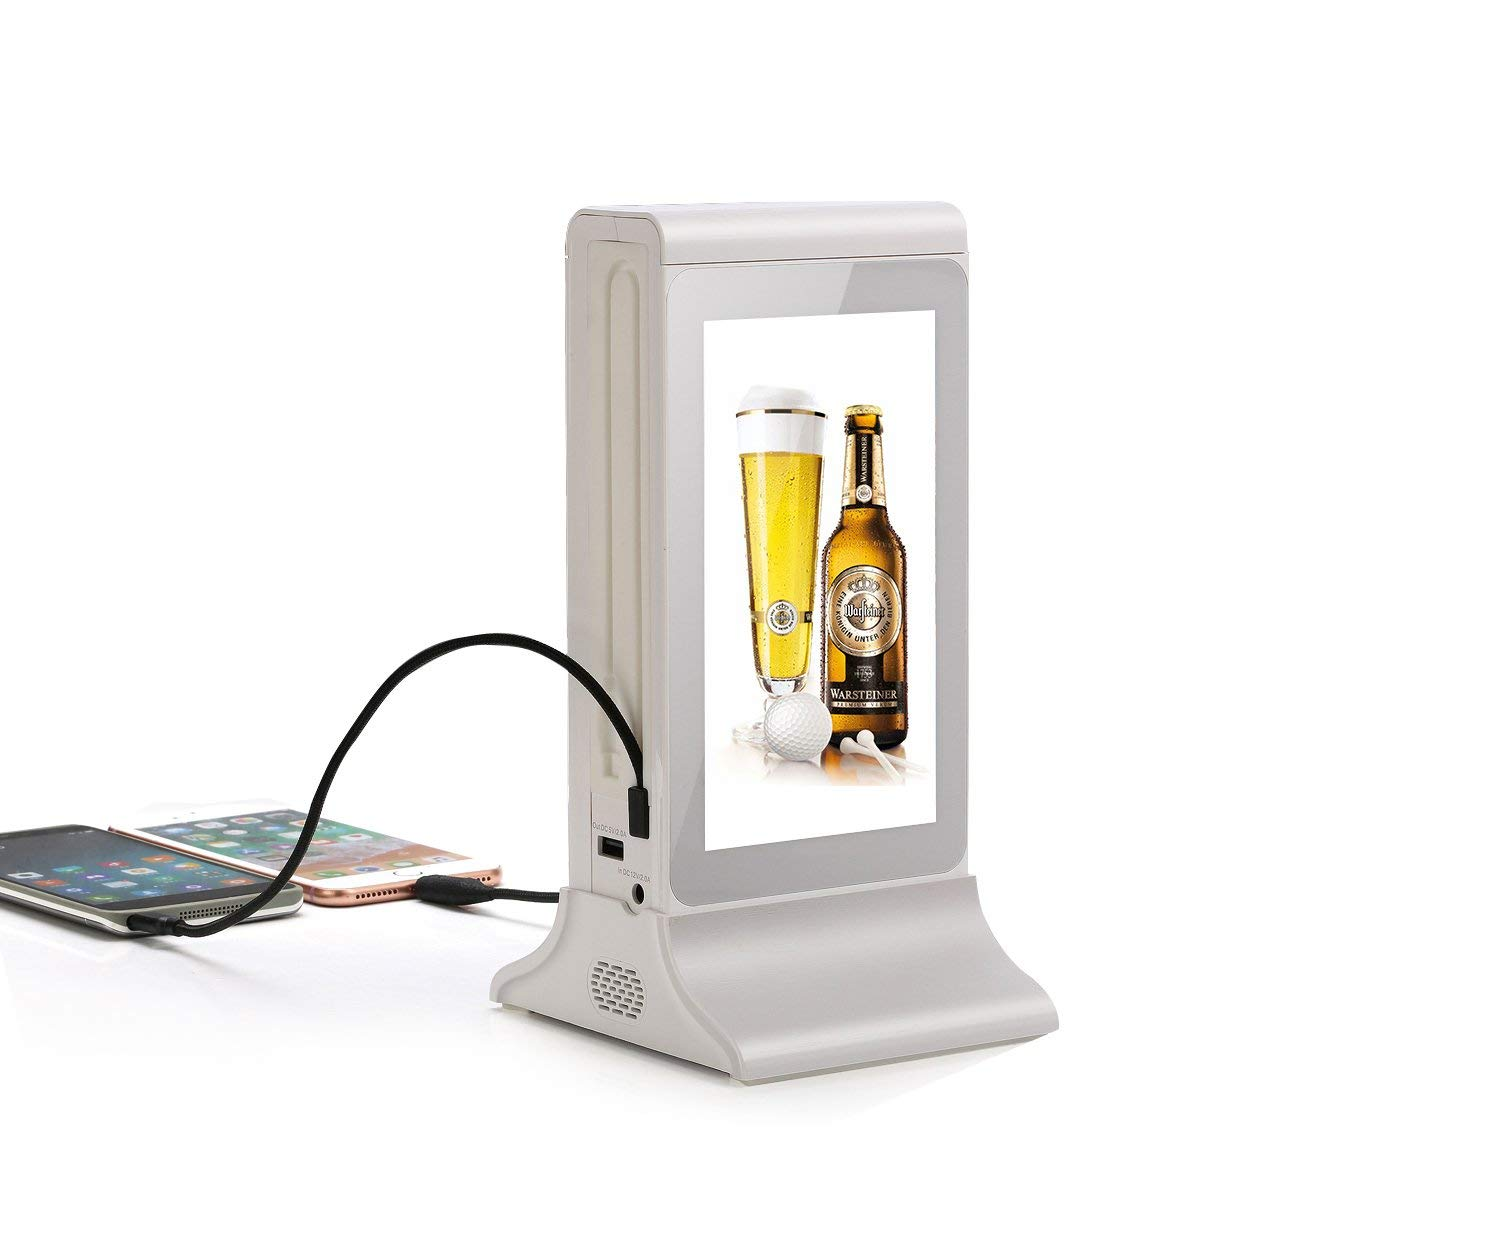 PowerSign FYD-835S WiFi Table Advertising Player Single LCD/Restaurant Menu/Charging Station FYD835S (White)